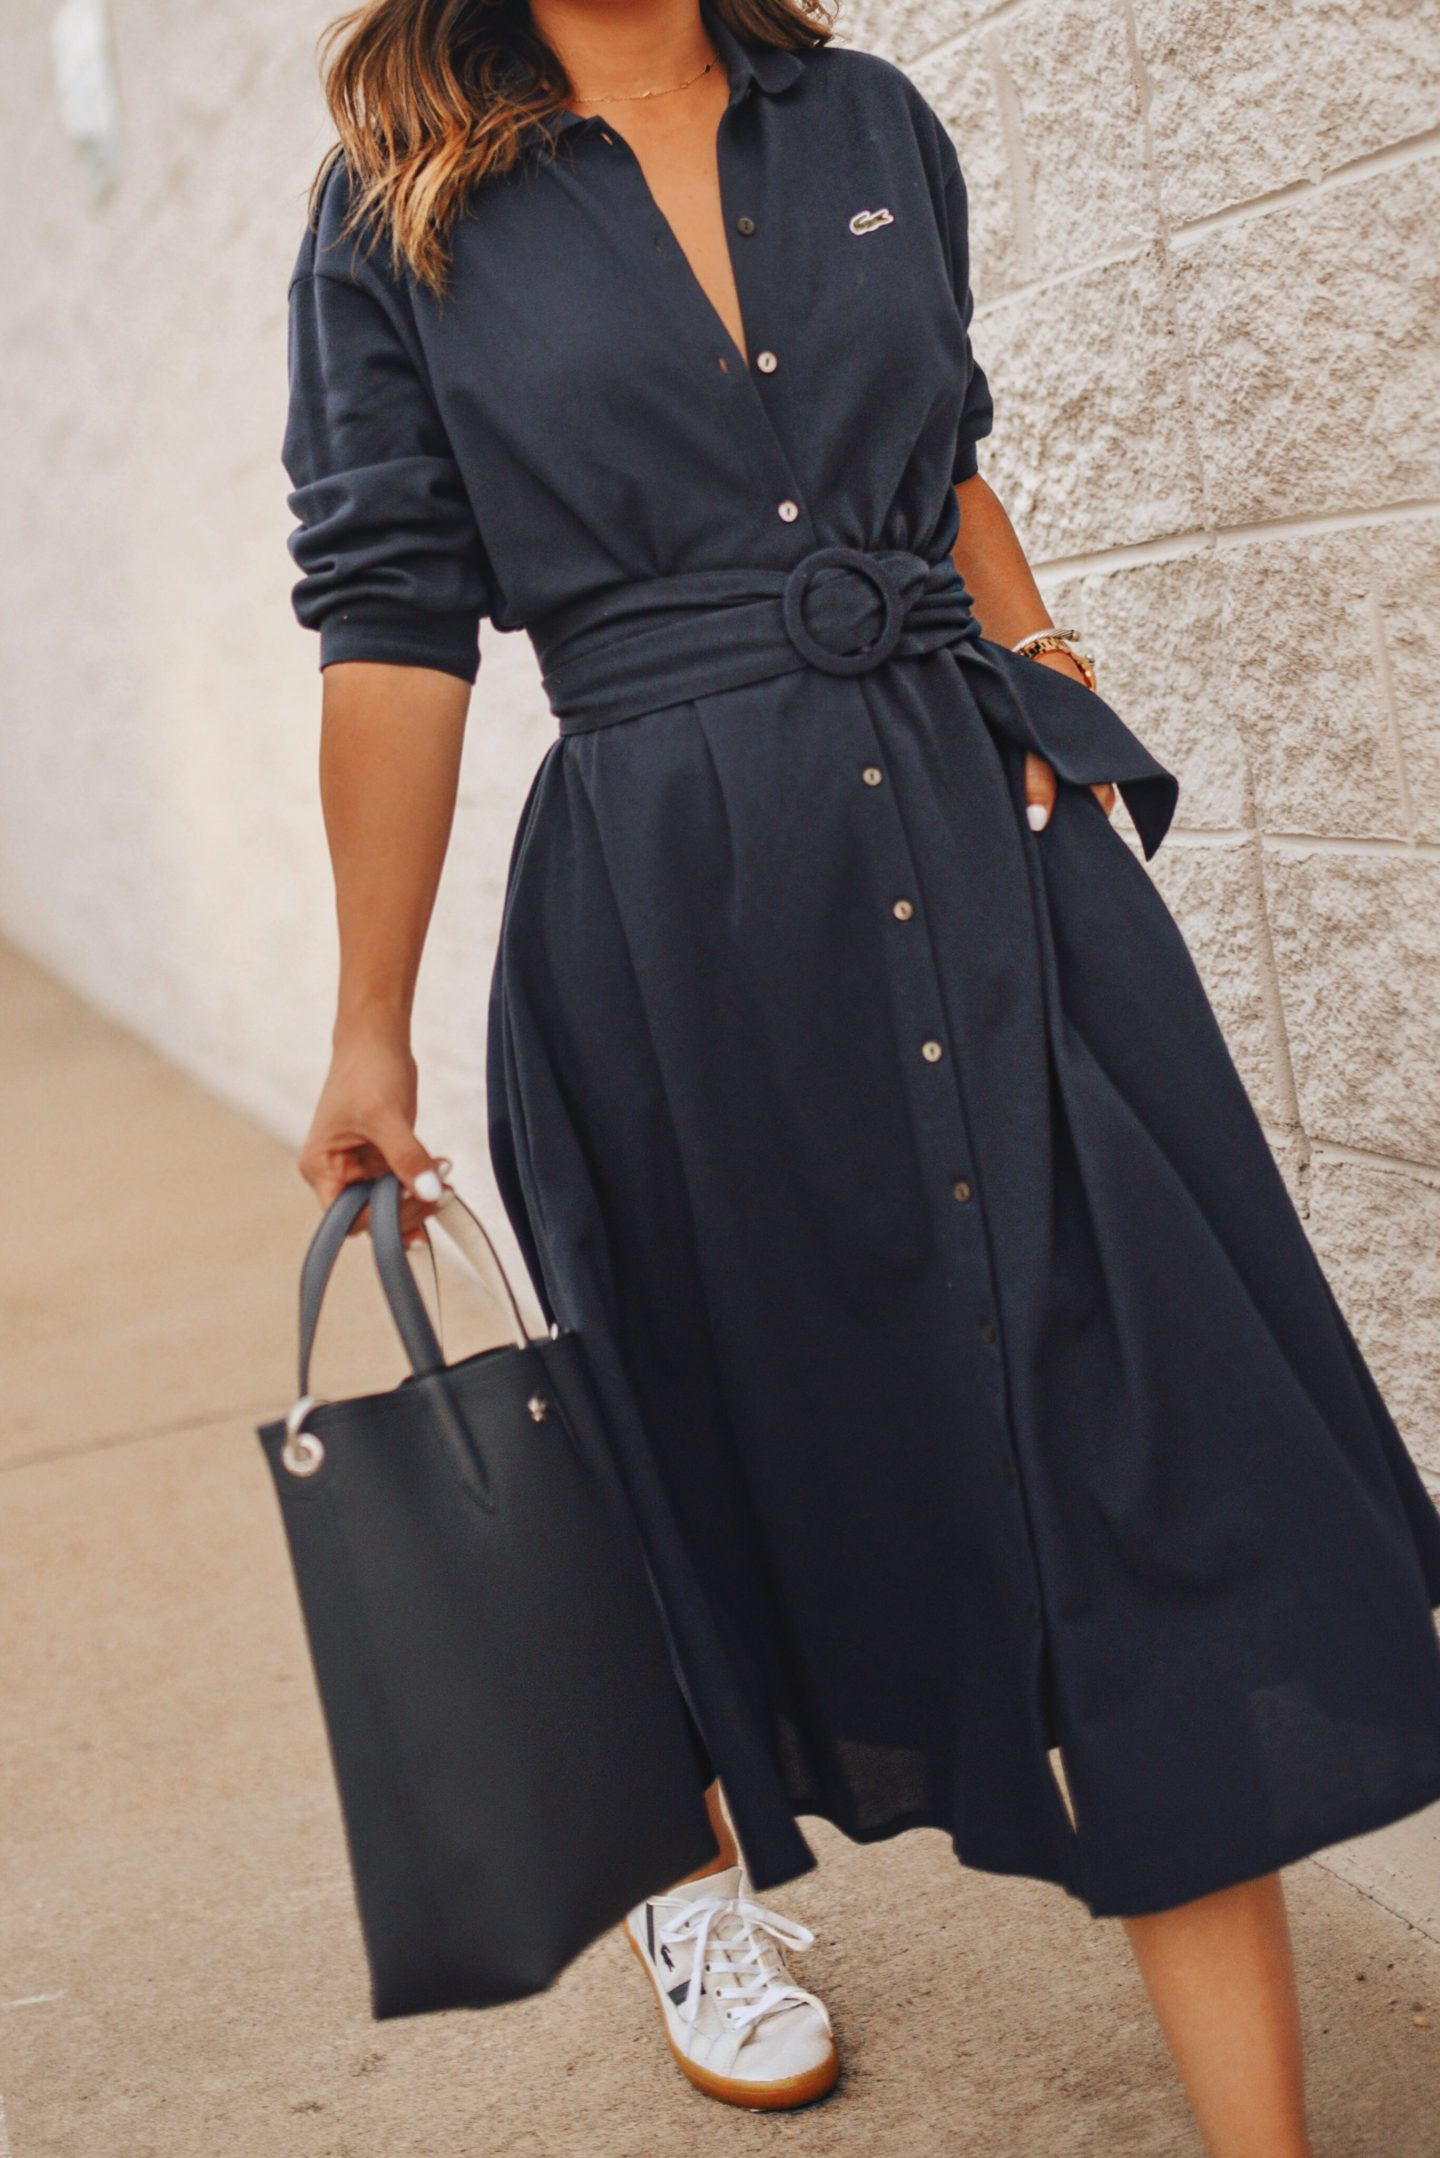 THE SHIRTDRESS EVERY WOMAN NEEDS IN HER CLOSET